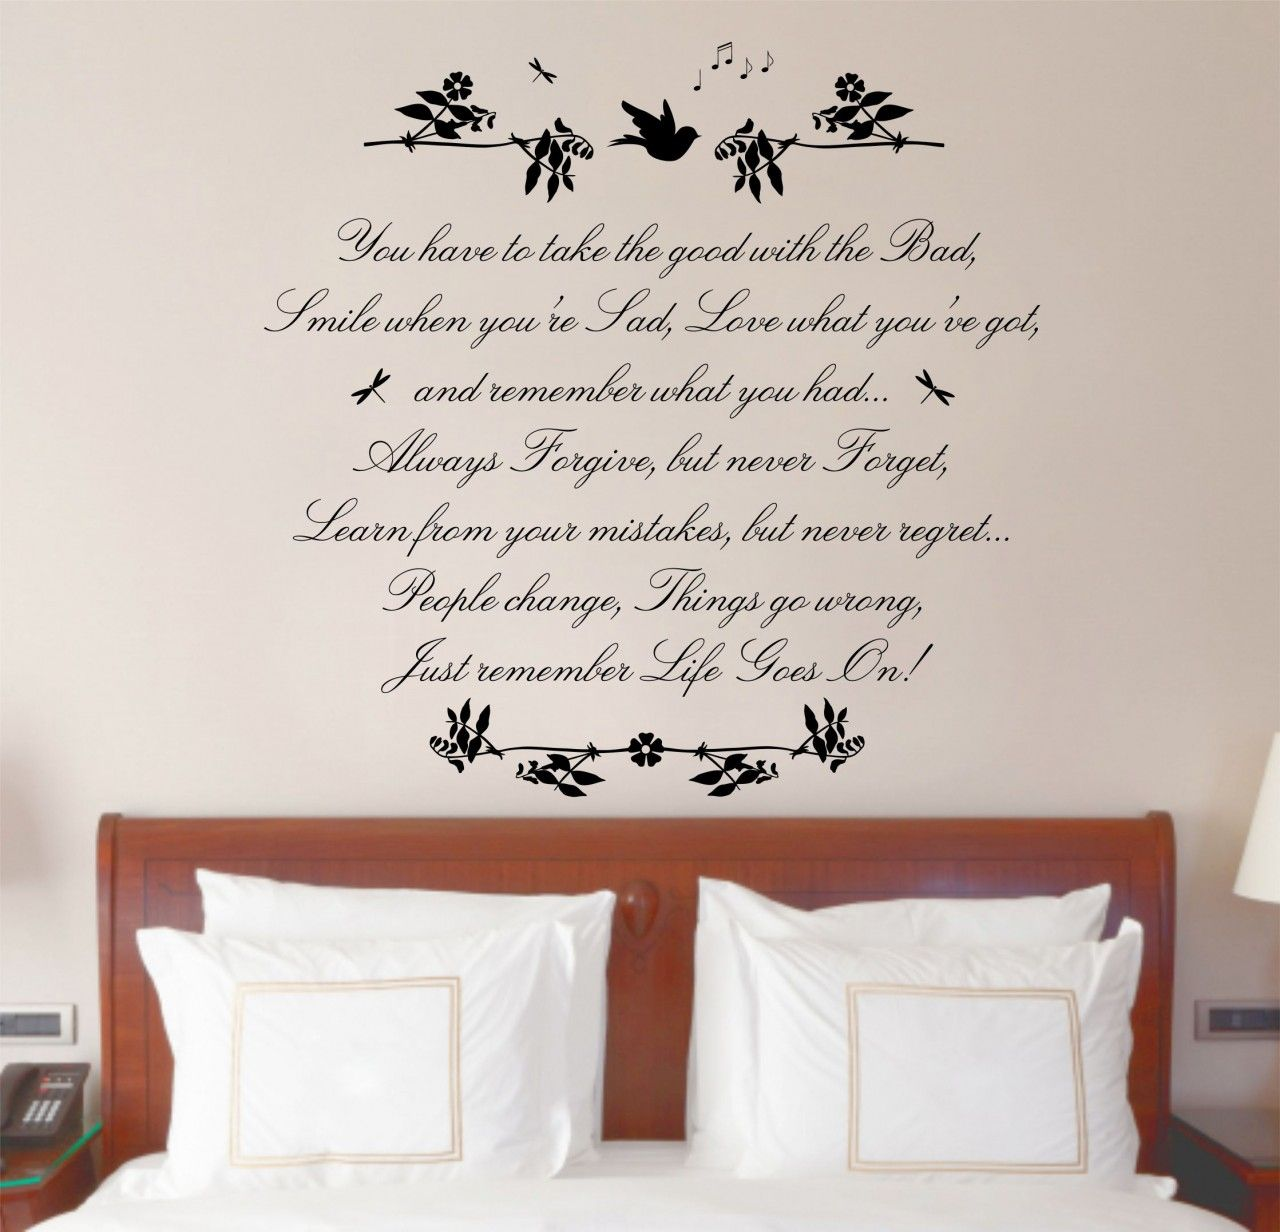 Love Quotes Wall Decals Wall Decals .life Goes On Quote Wall Art Sticker Decal Mural